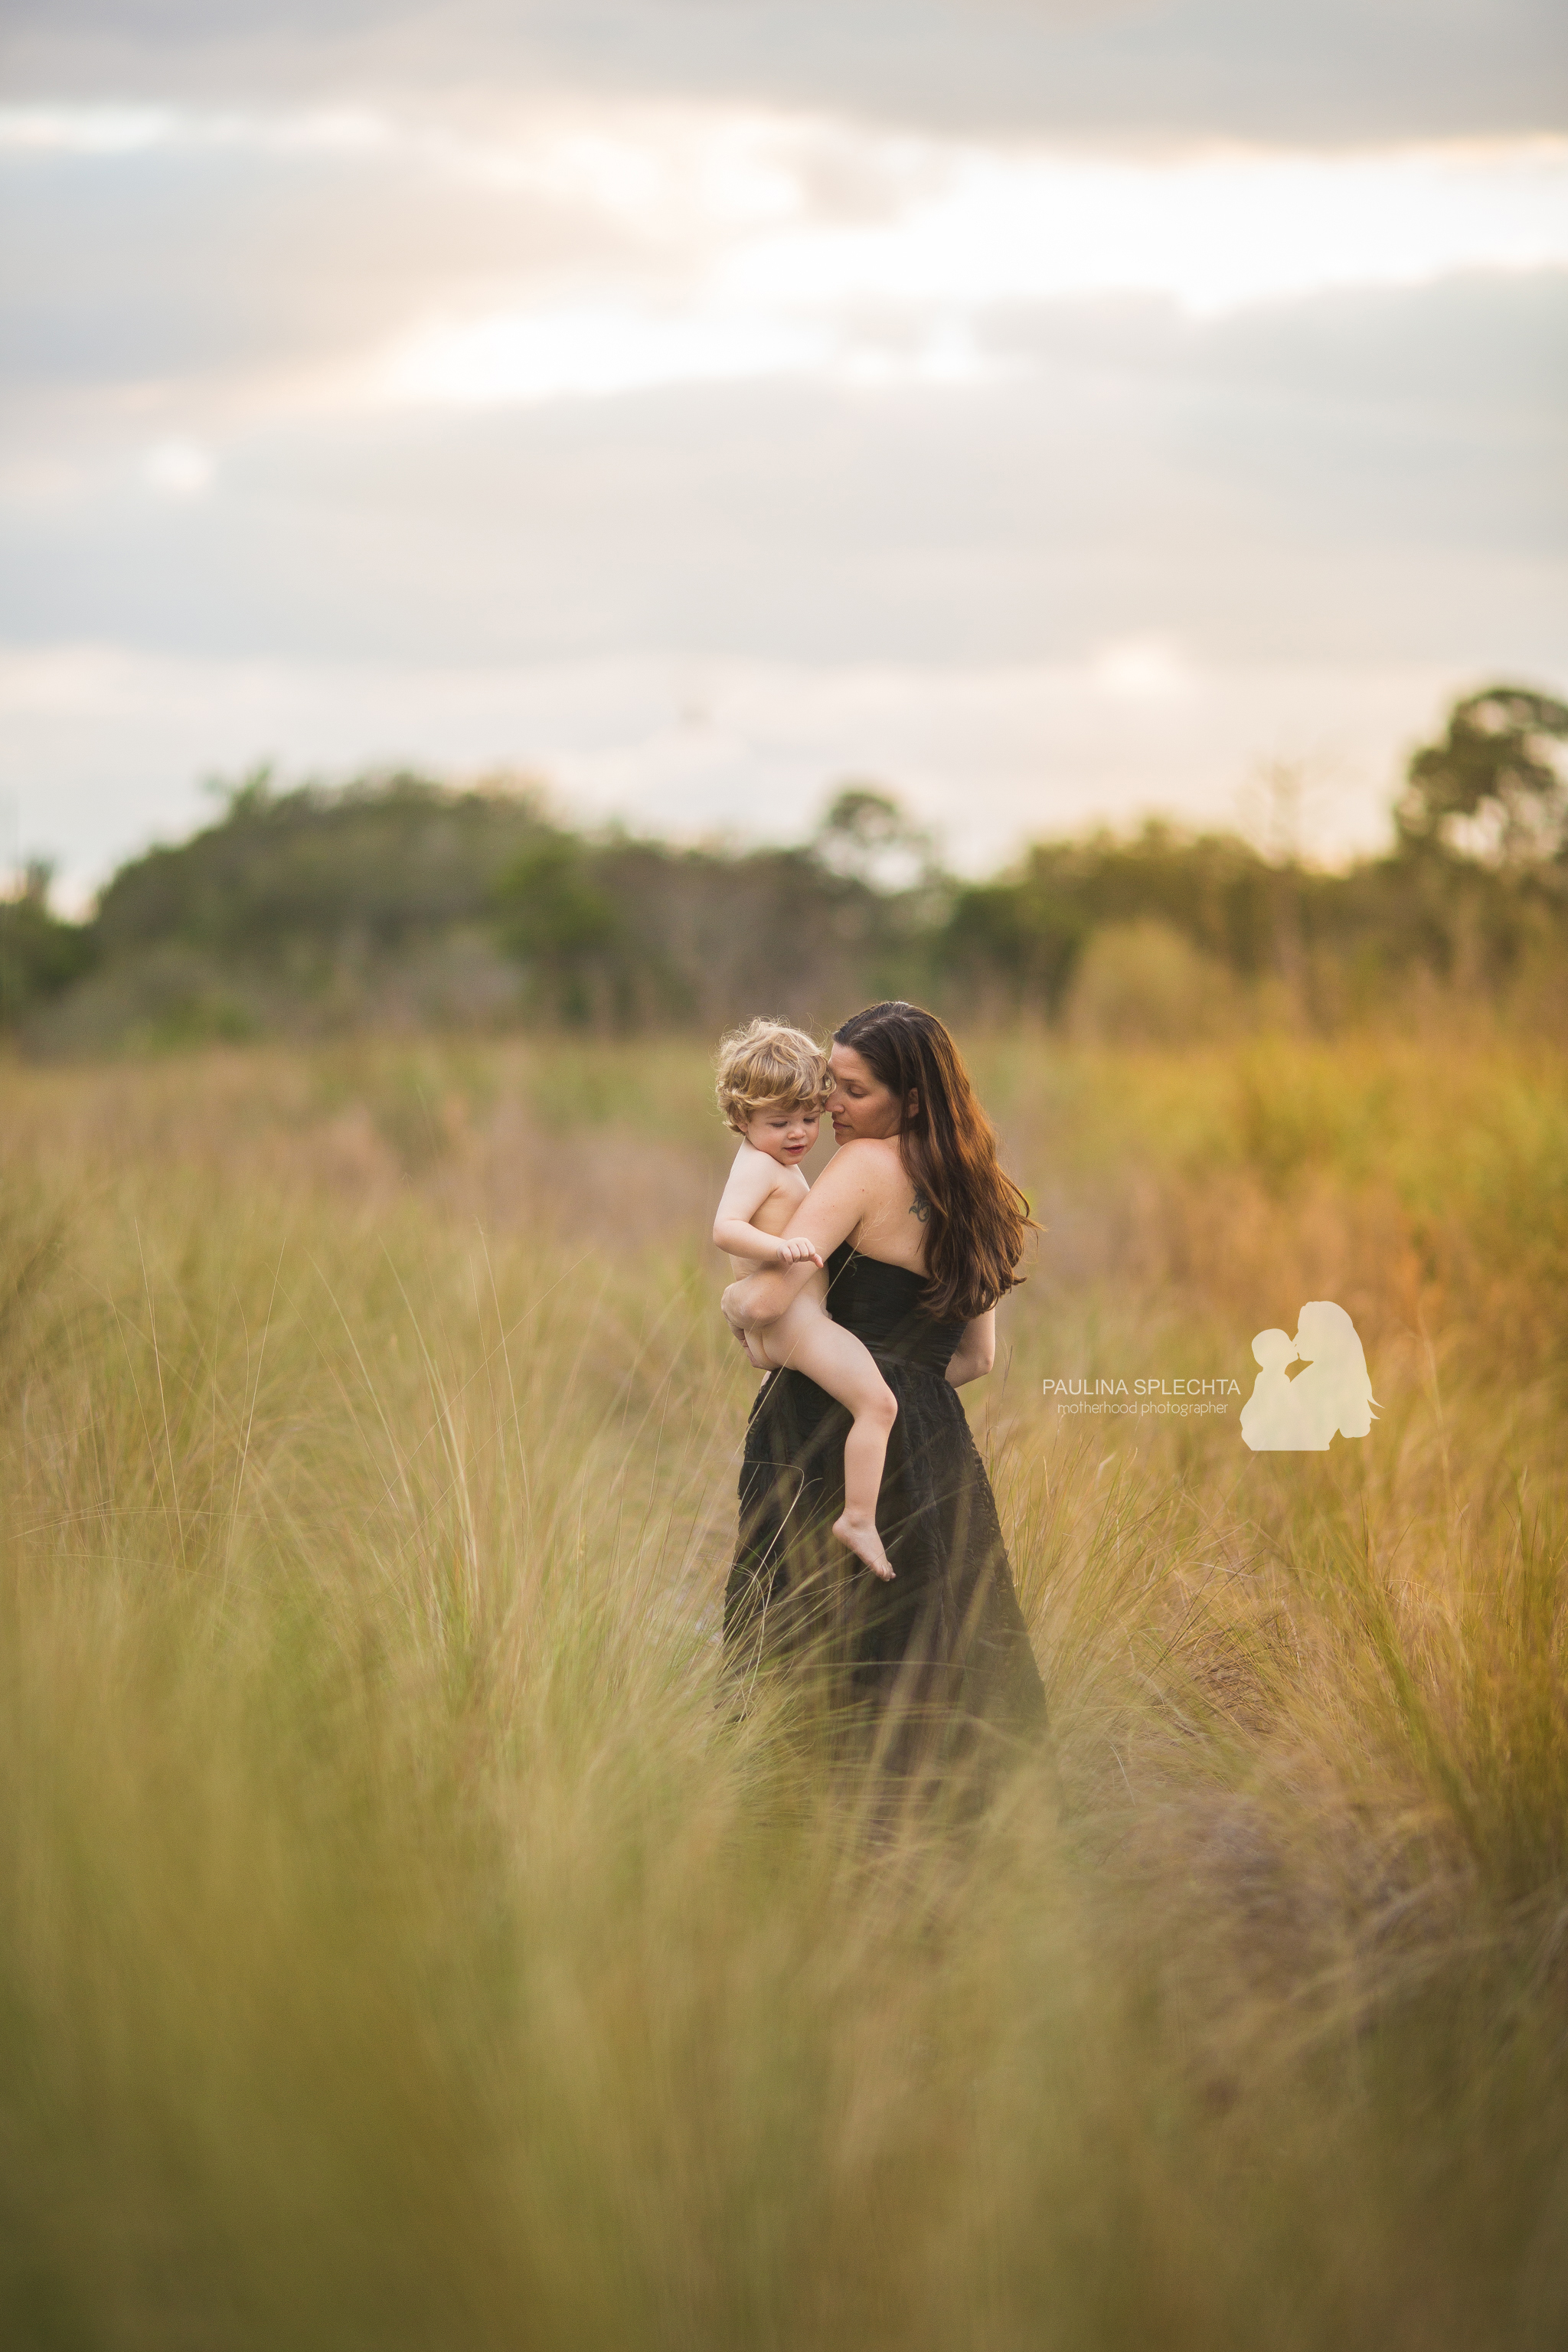 paulina-splechta-boca-birth-photographer-bocabirthphotographer-south-florida-birth-photographer-maternityphotographer-pregnancy-motherhood-11.jpg